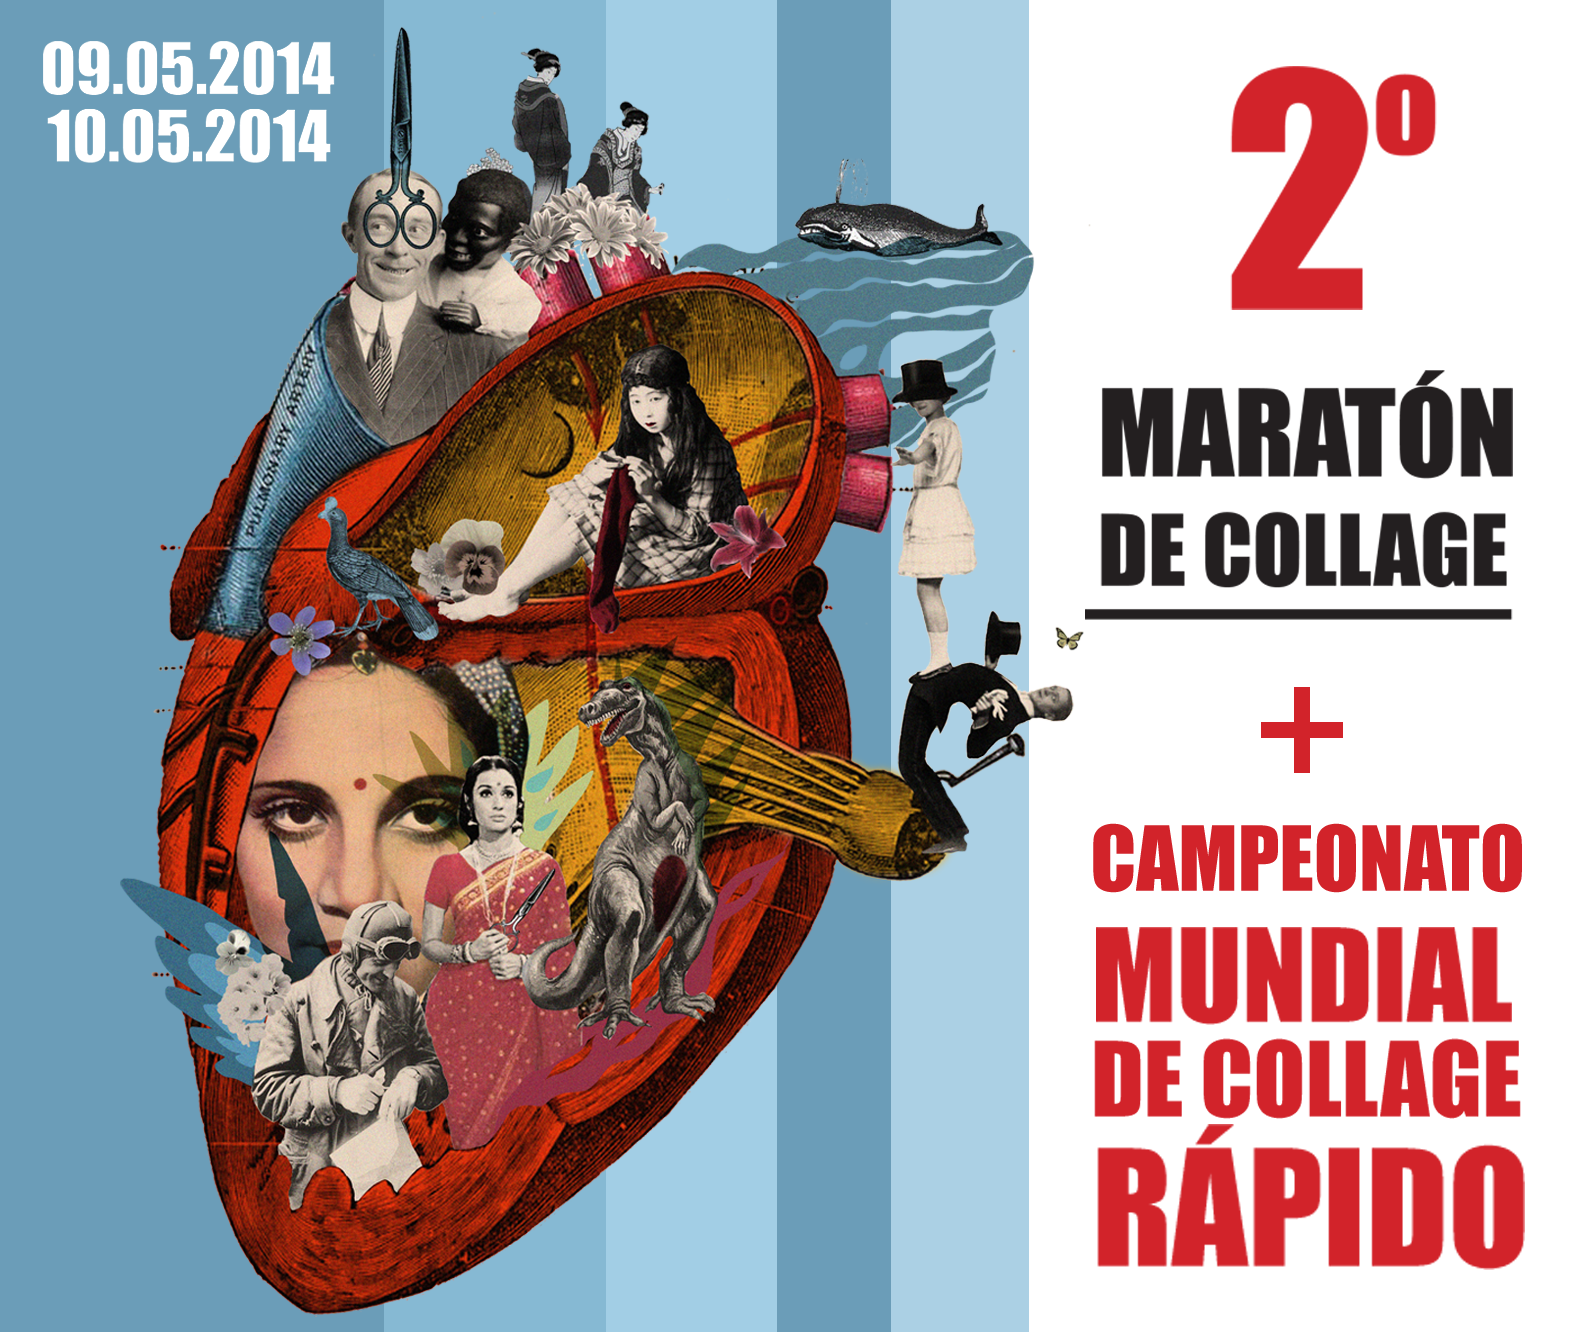 Maratón de Collage +  Campeonato Mundial de Collage Rápido